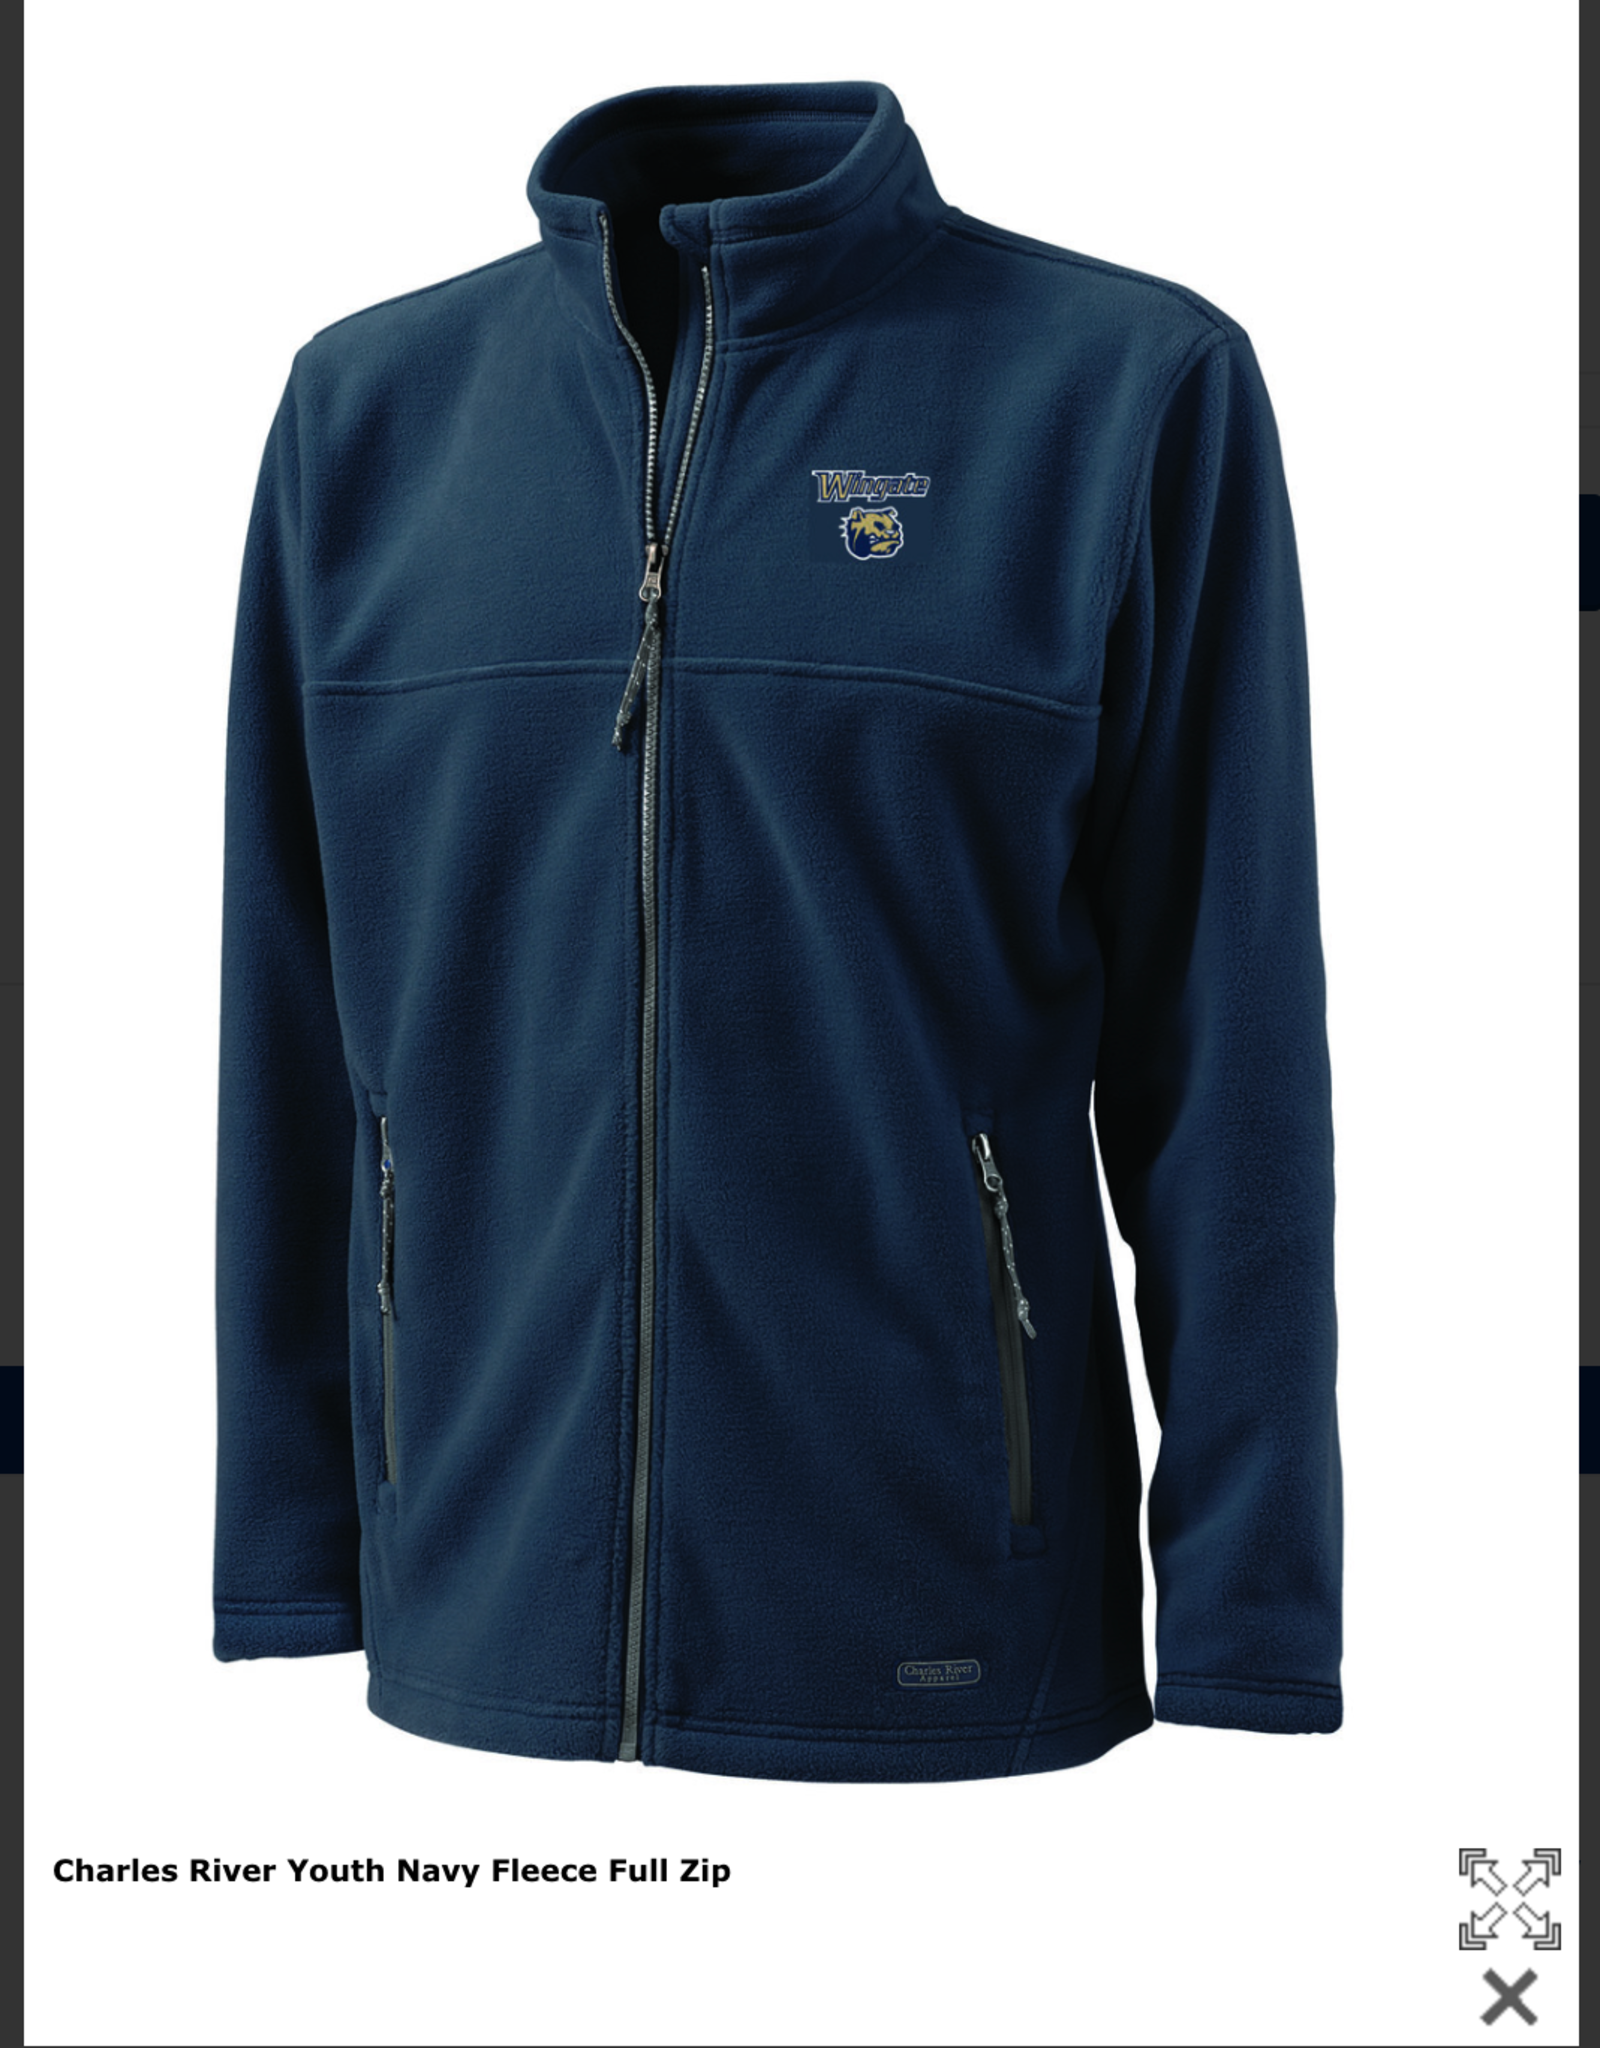 Charles River Youth Navy Fleece Full Zip